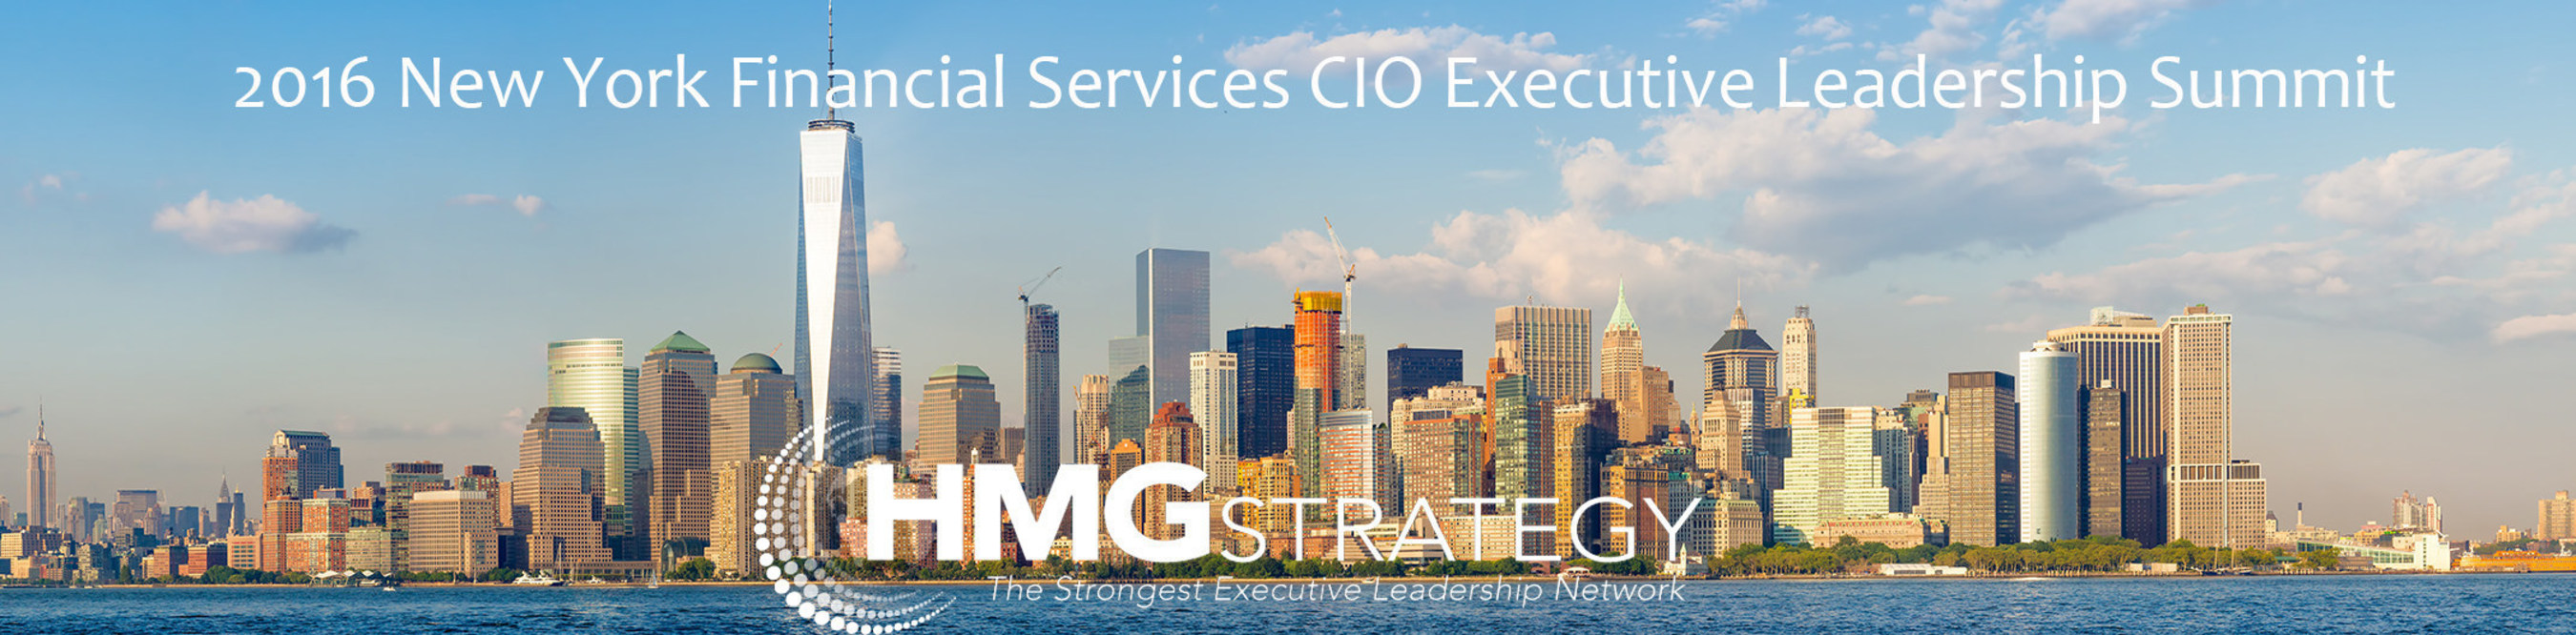 Embracing Digital Amid the FinTech Challenge to Carry the Conversation at HMG Strategy's Upcoming 2016 Financial Services CIO Executive Leadership Summit